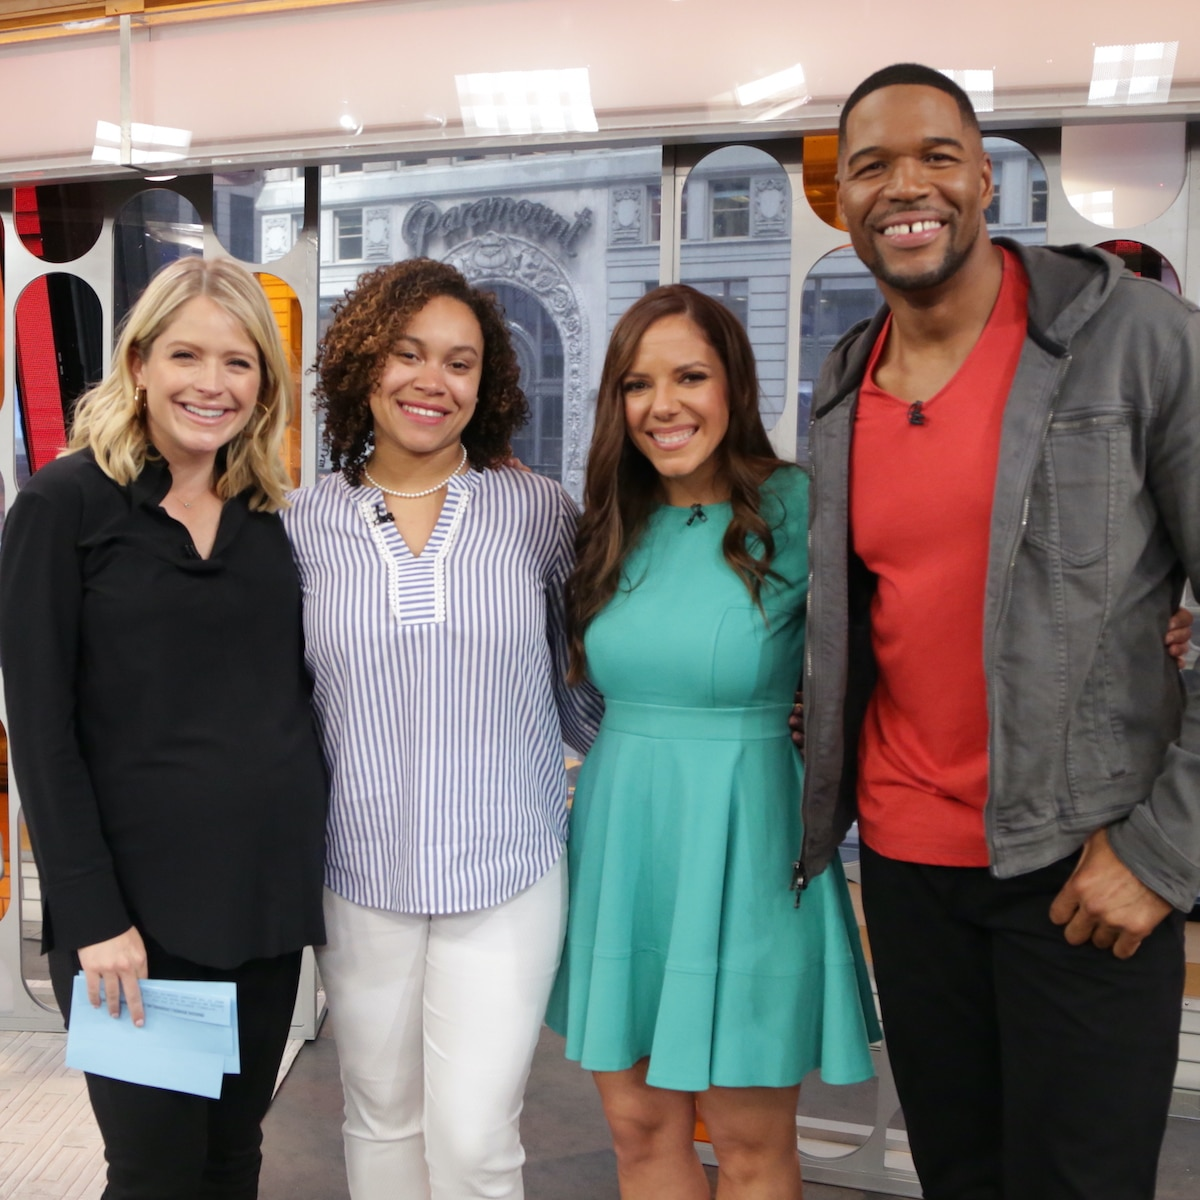 Sara Haines, Jessica Bishop, Michael Strahan - Save Money on a Wedding